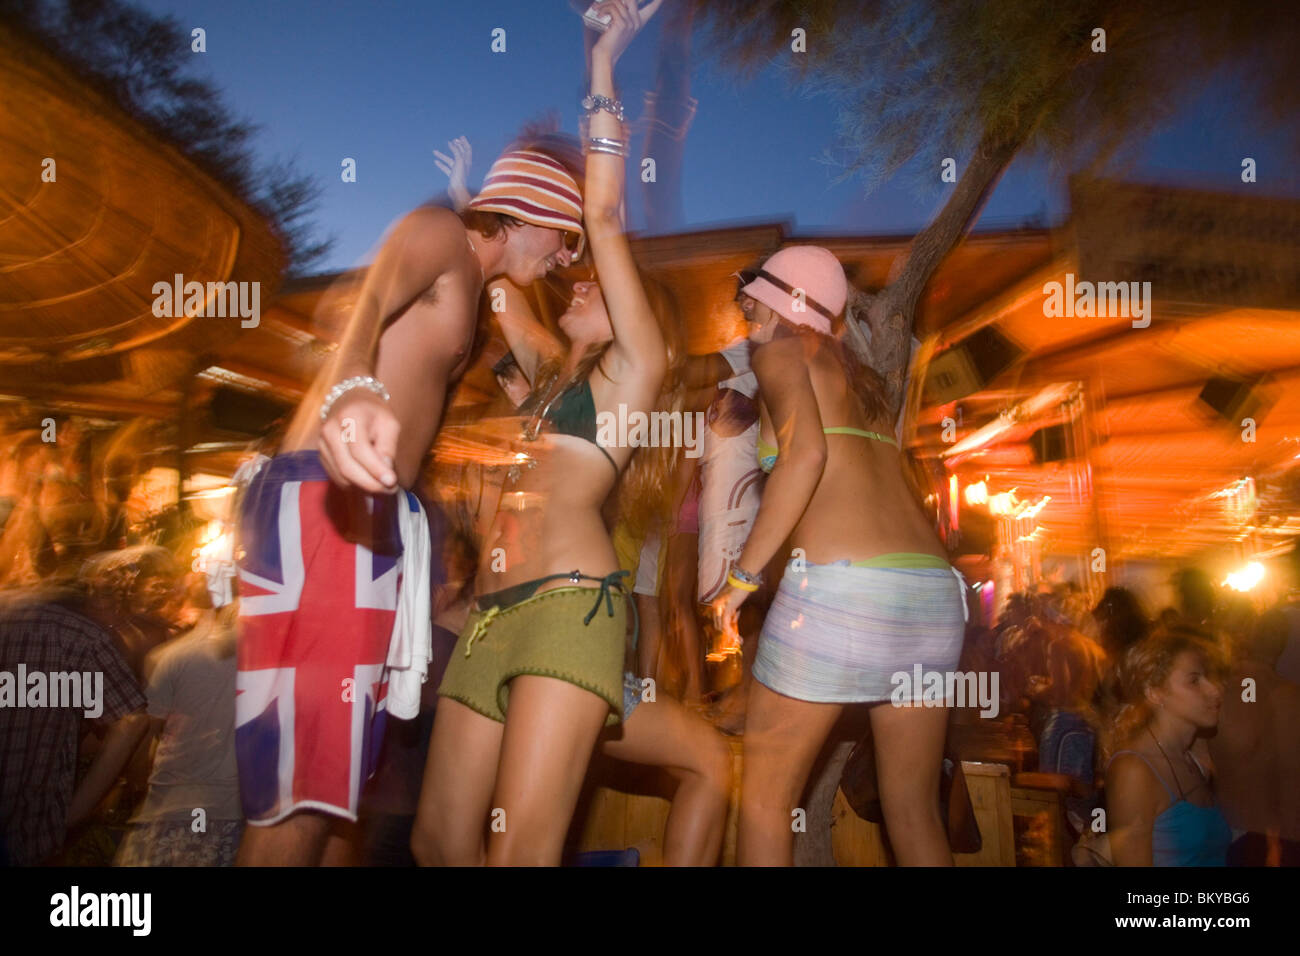 Girl Dancing Full Moon Party Stock Photos & Girl Dancing Full Moon ...